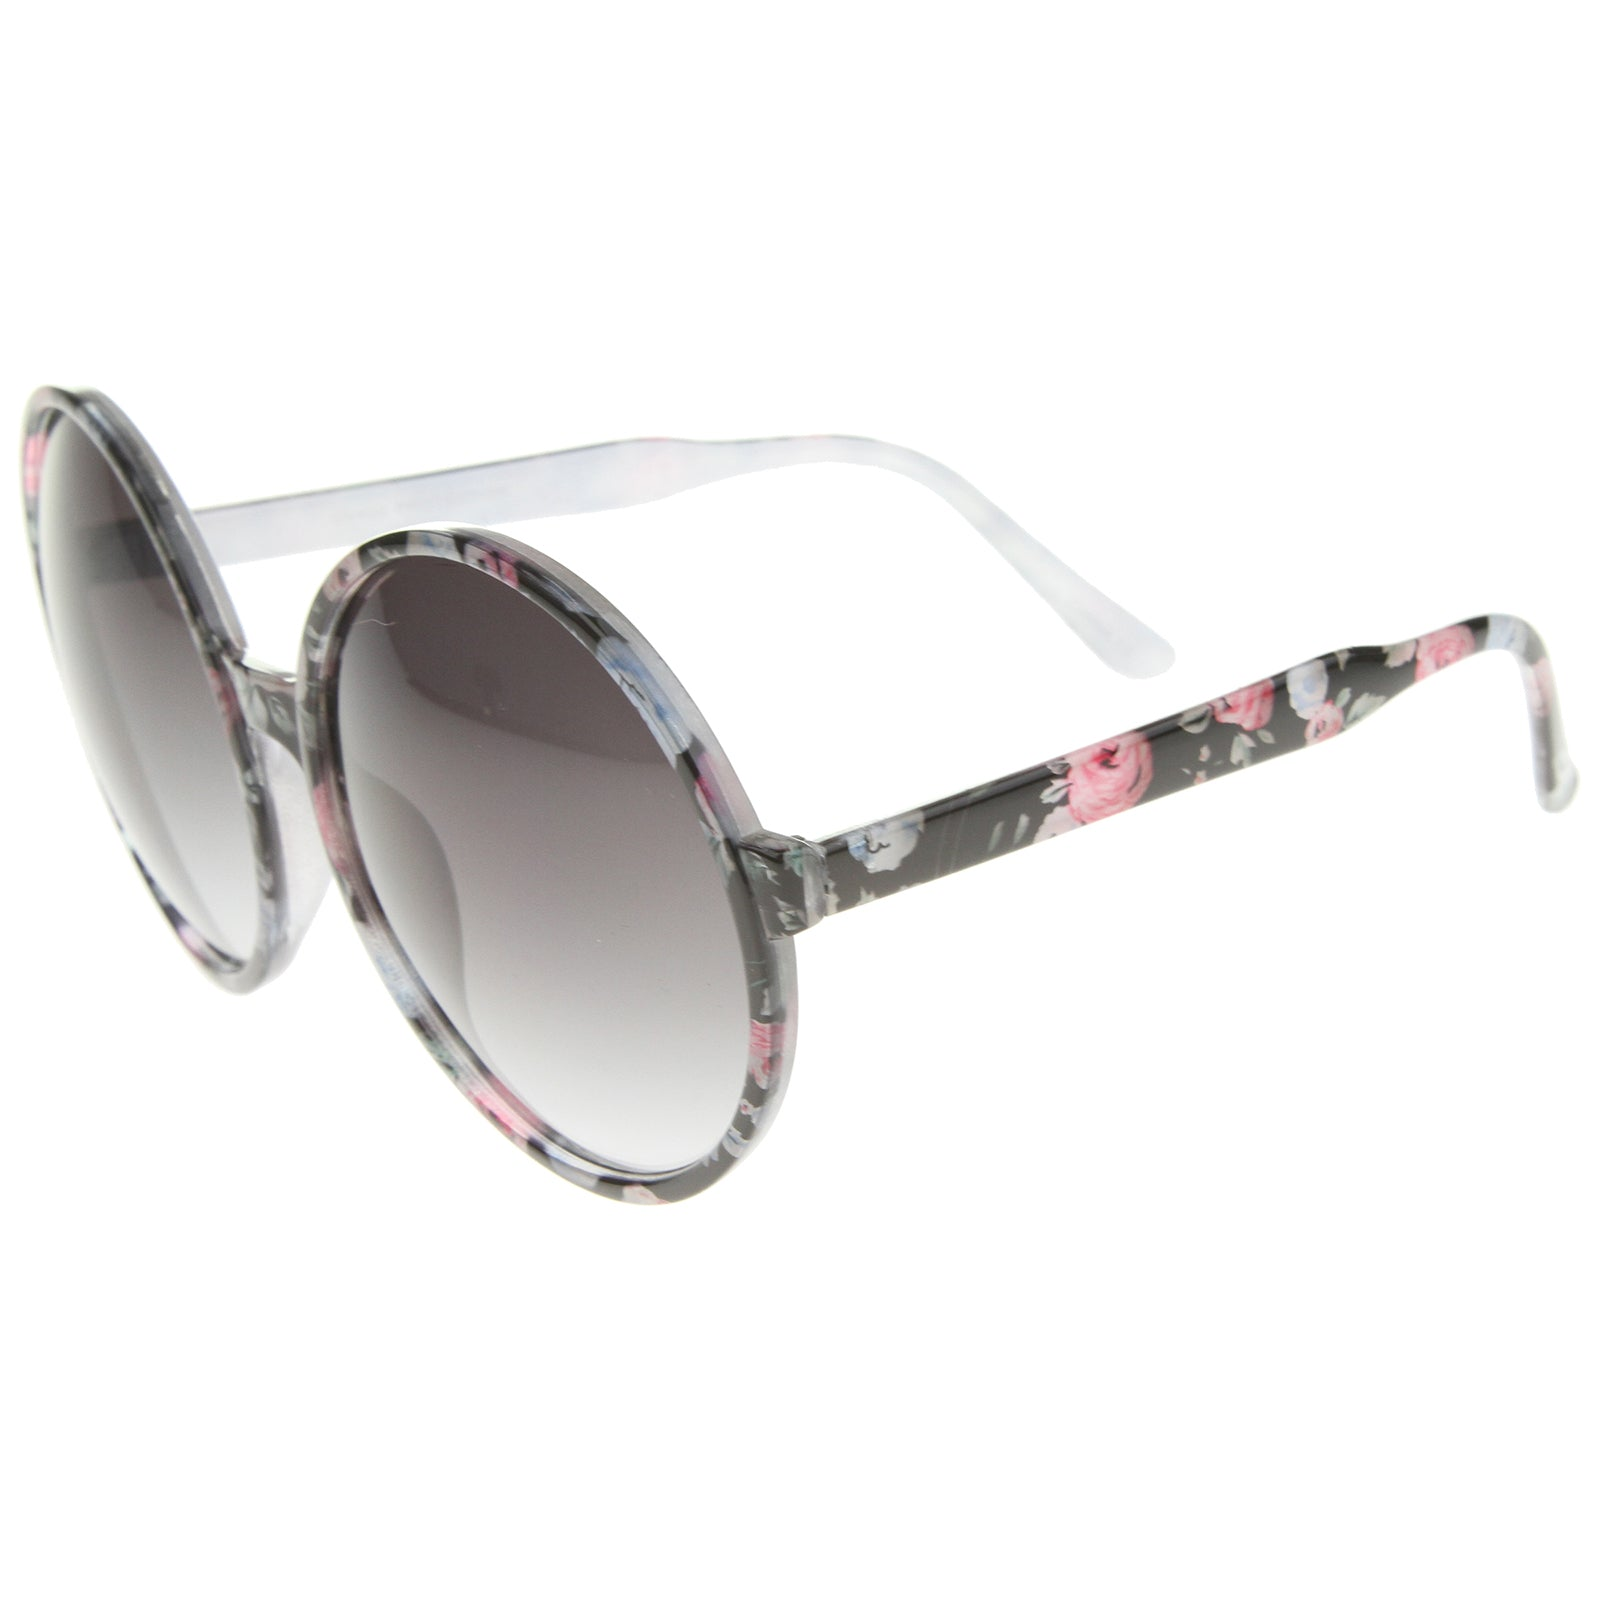 Women's Fashion Floral Print Gradient Lens Oversize Round Sunglasses 66mm - sunglass.la - 3